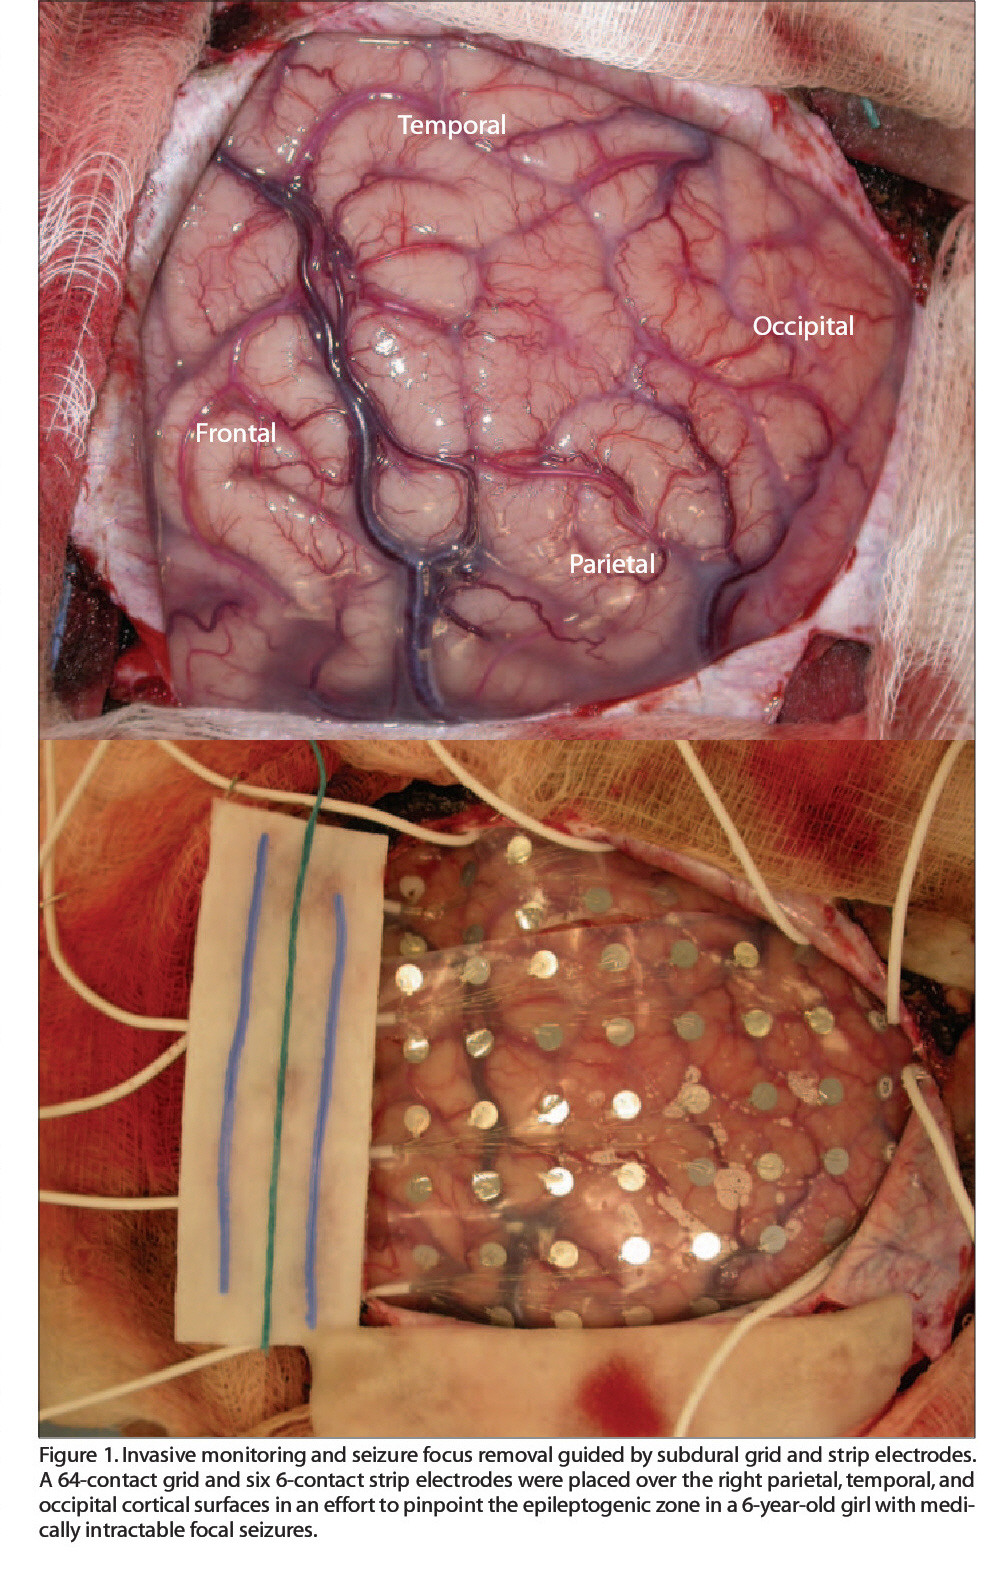 Figure 1. Invasive monitoring and seizure focus removal guided by subdural grid and strip electrodes. A 64-contact grid and six 6-contact strip electrodes were placed over the right parietal, temporal, and occipital cortical surfaces in an effort to pinpoint the epileptogenic zone in a 6-year-old girl with medically intractable focal seizures.